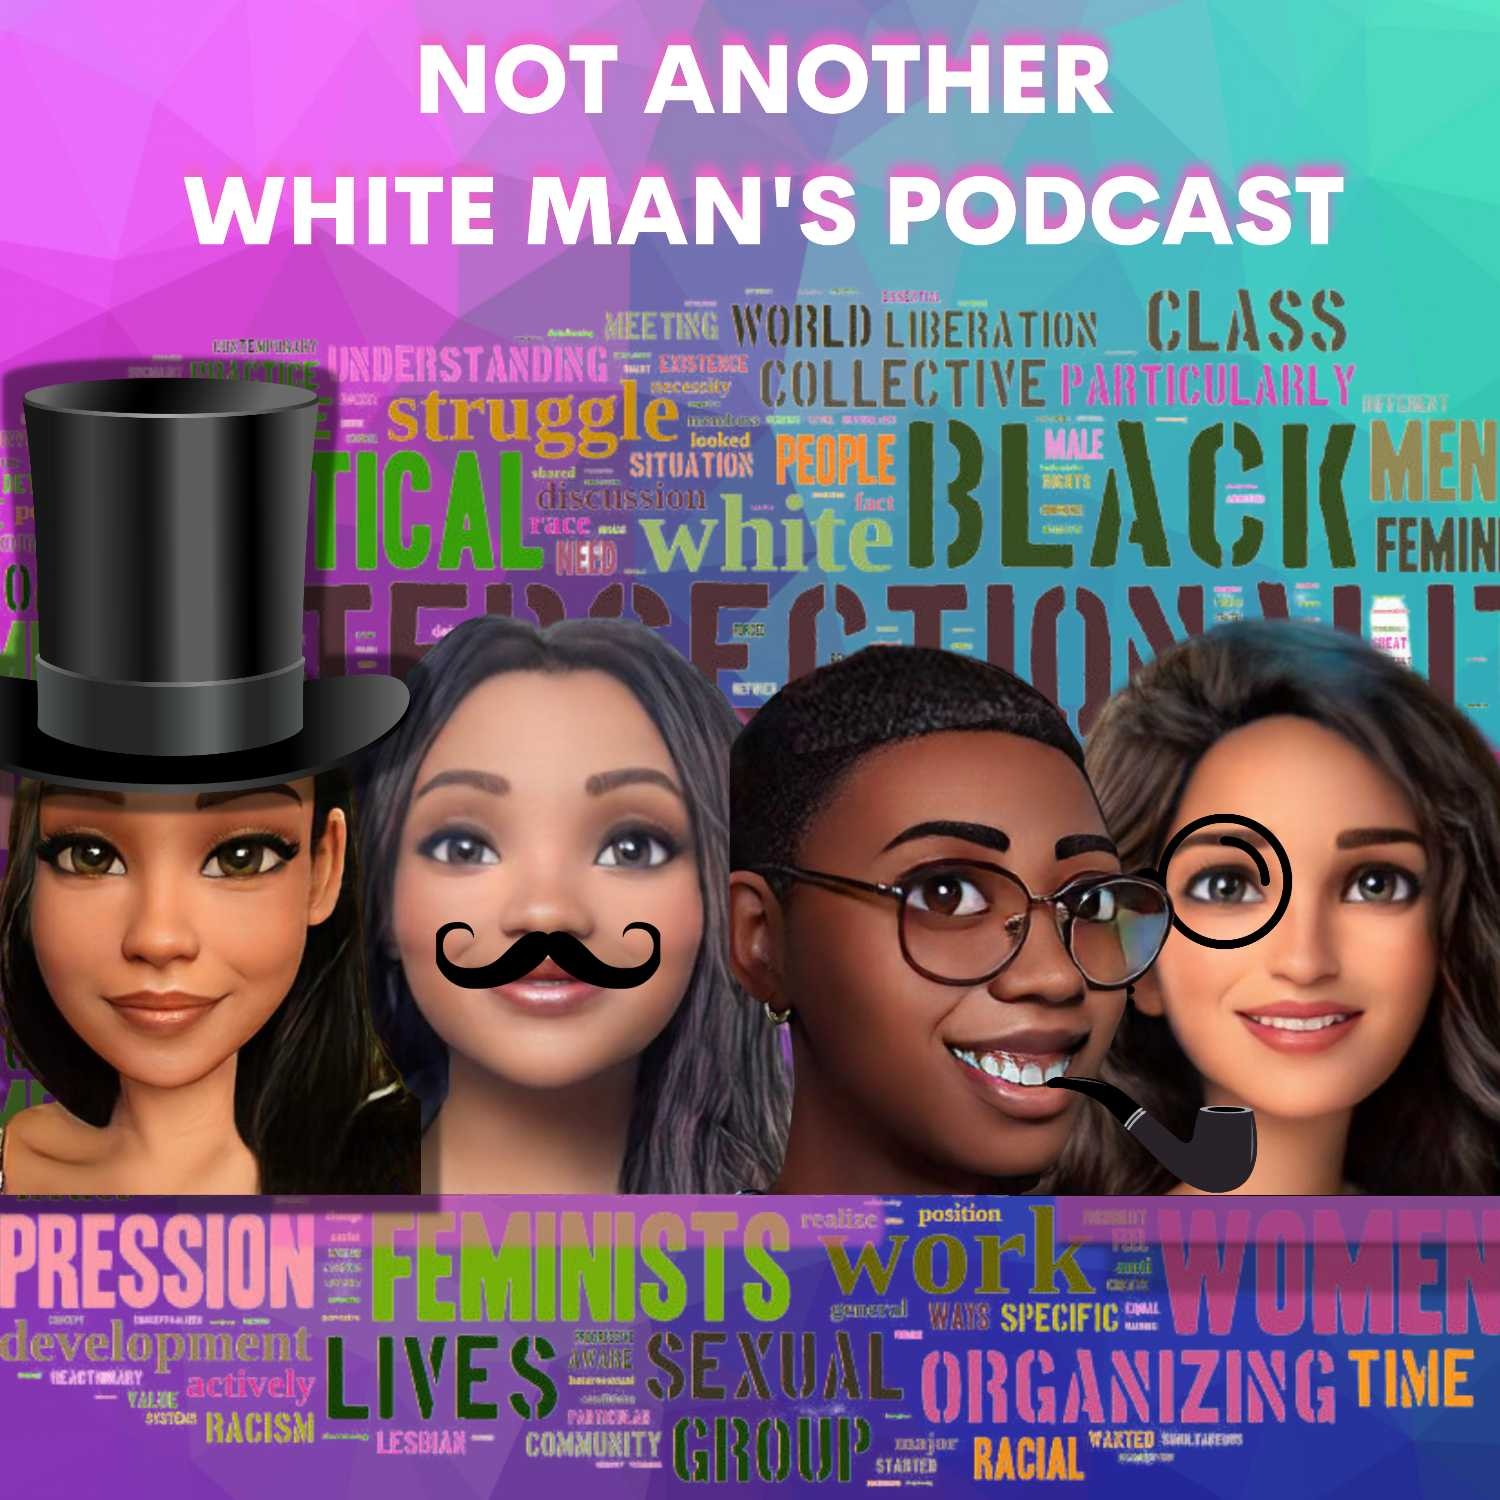 Not Another White Man's Podcast